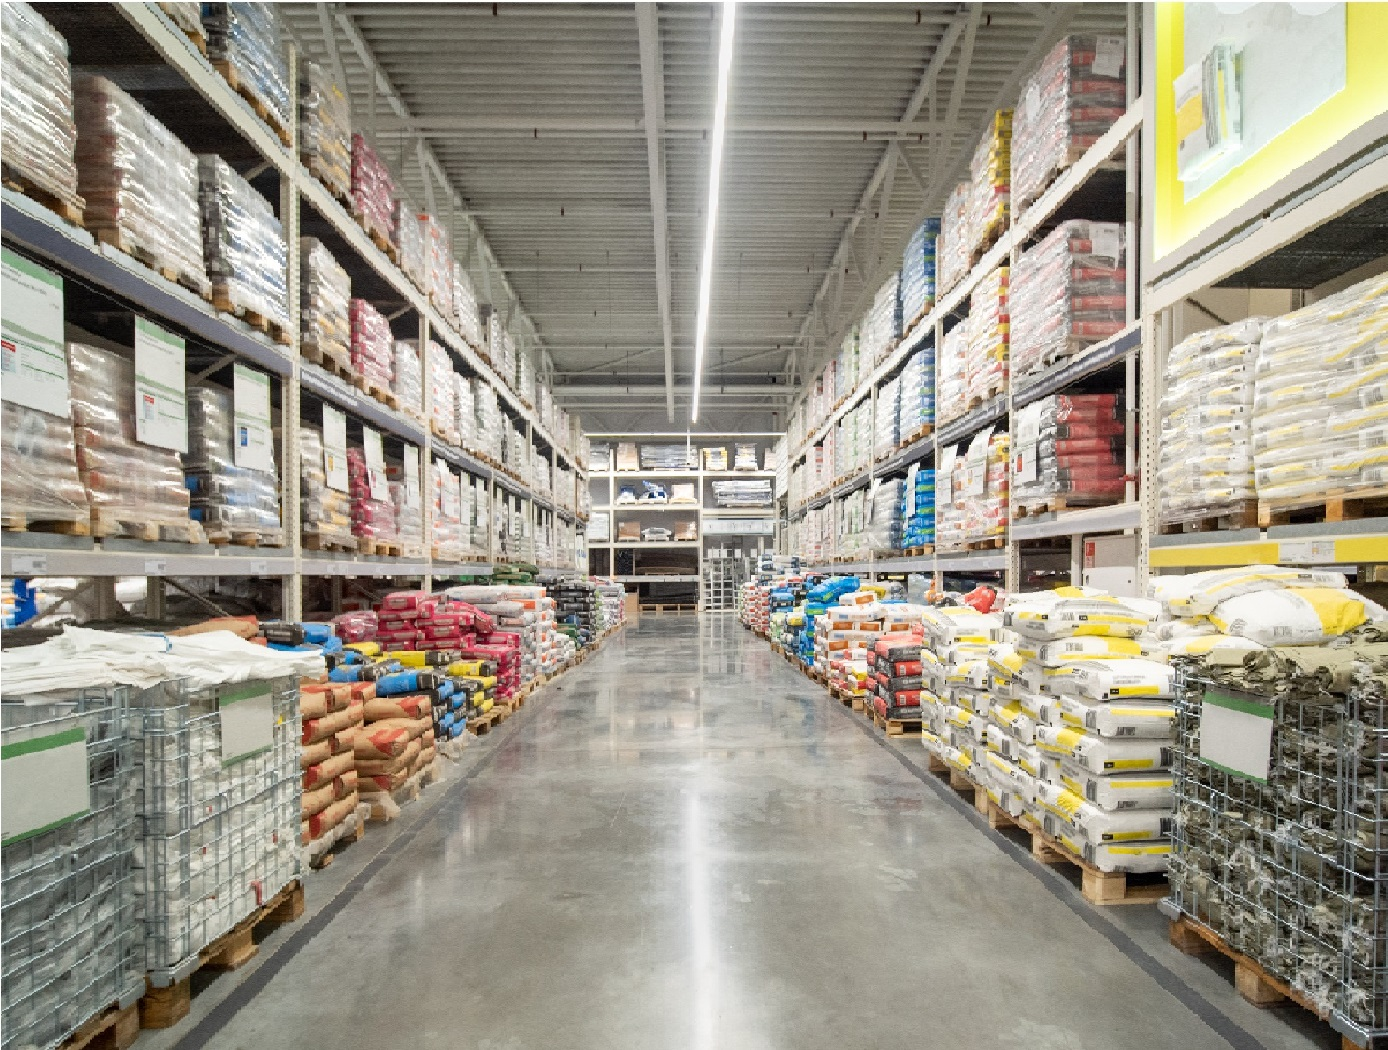 Warehouse with different items